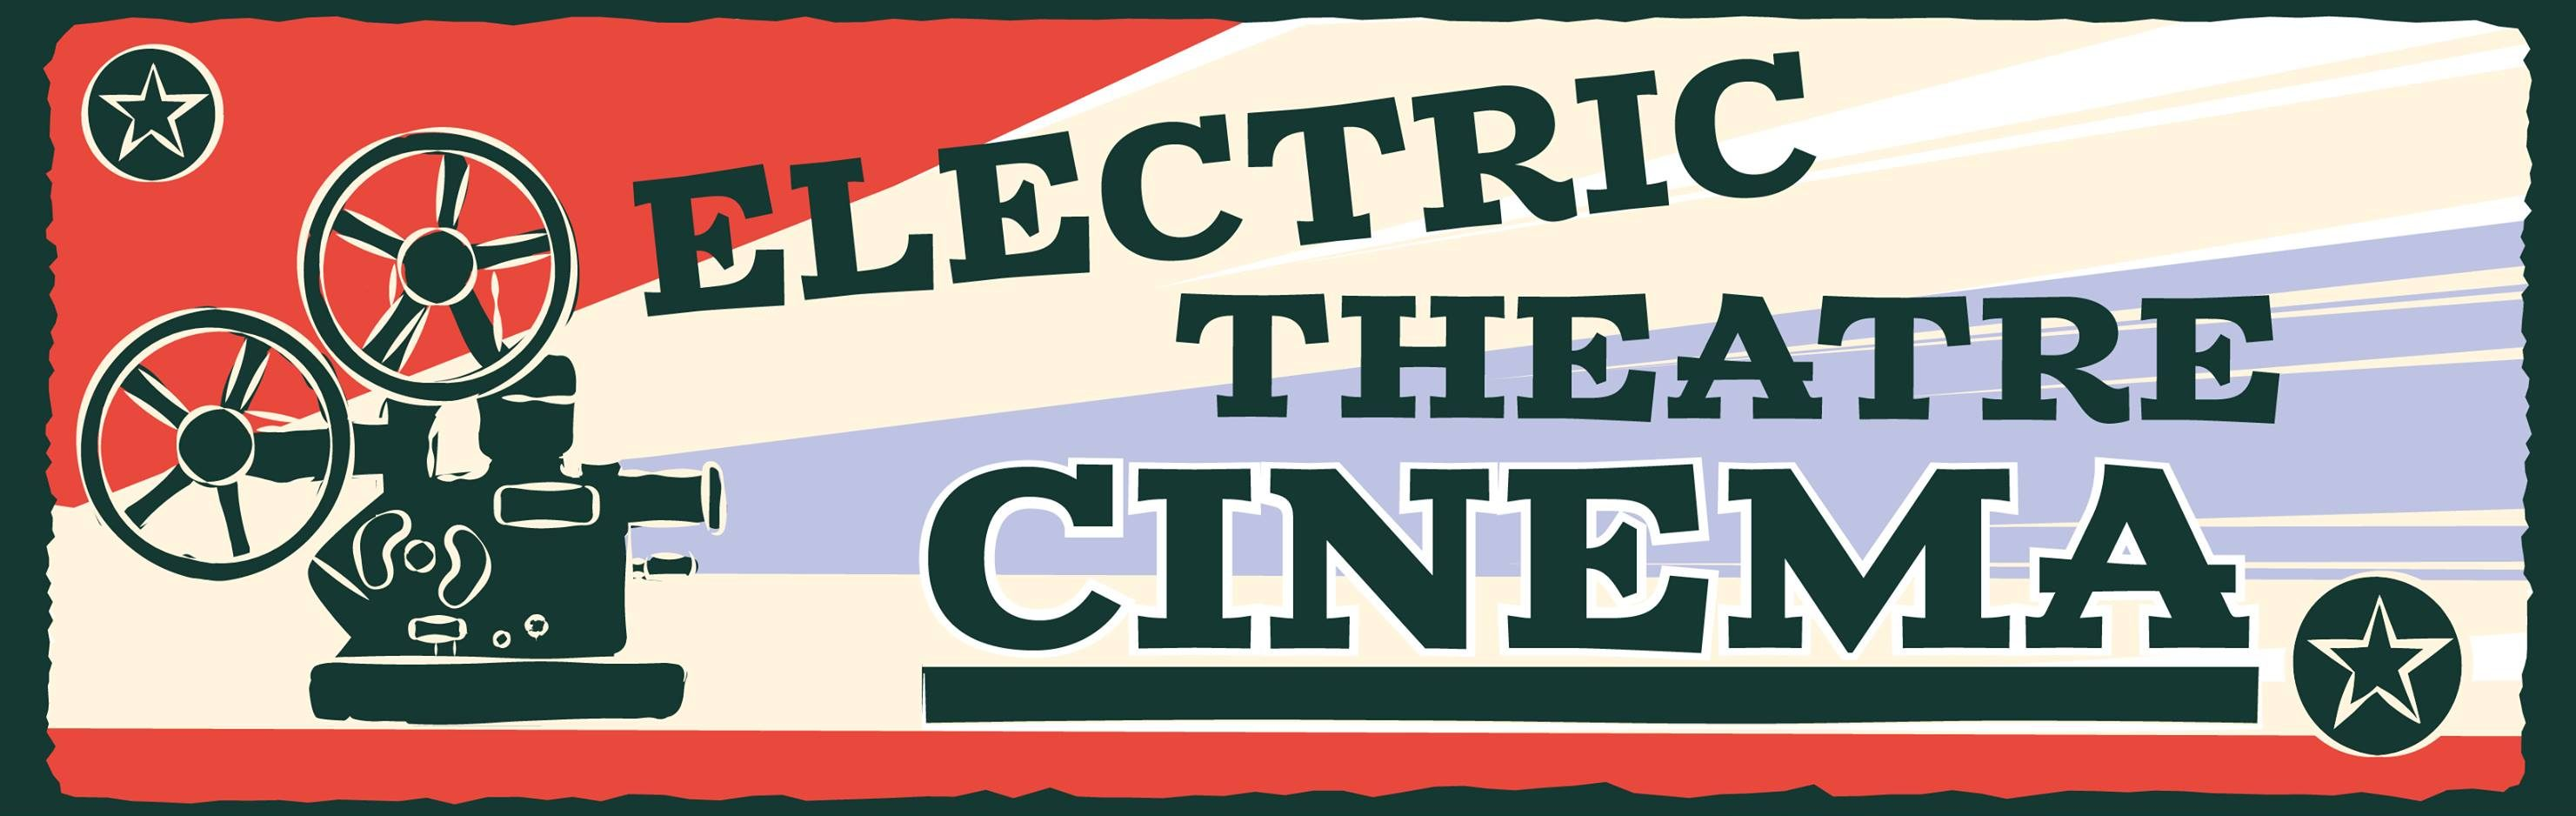 Electric Theatre Cinema